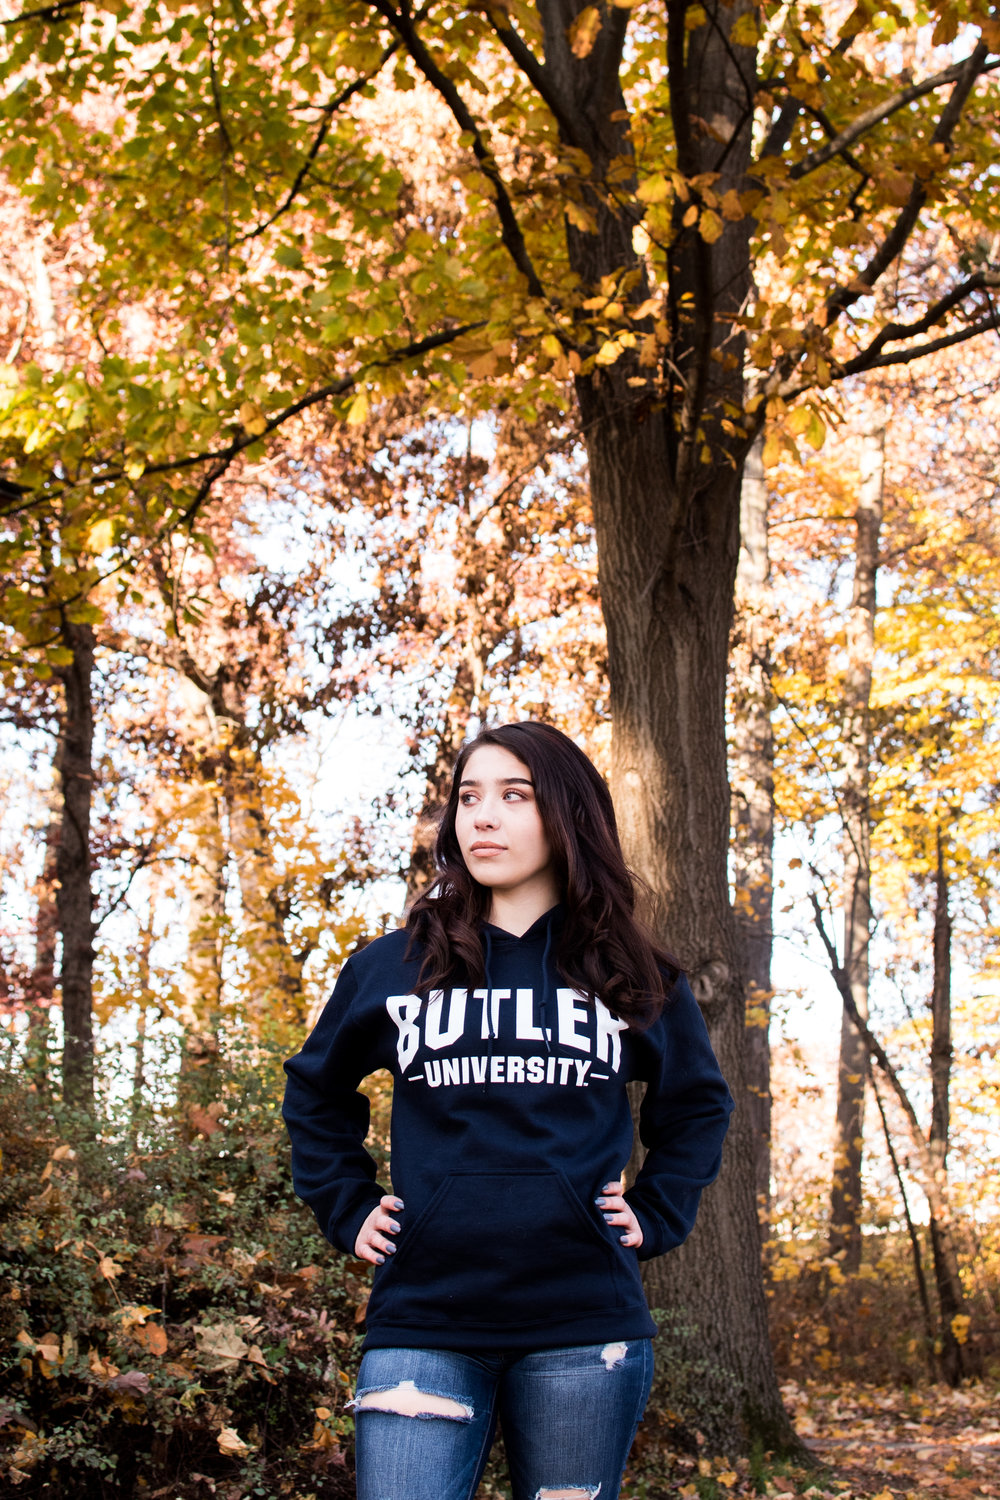 Kyla Jo Photography // Senior Photographer // Muncie Indiana Senior Photos // Muncie Indiana Photographer // Butler Bulldogs // College Acceptance